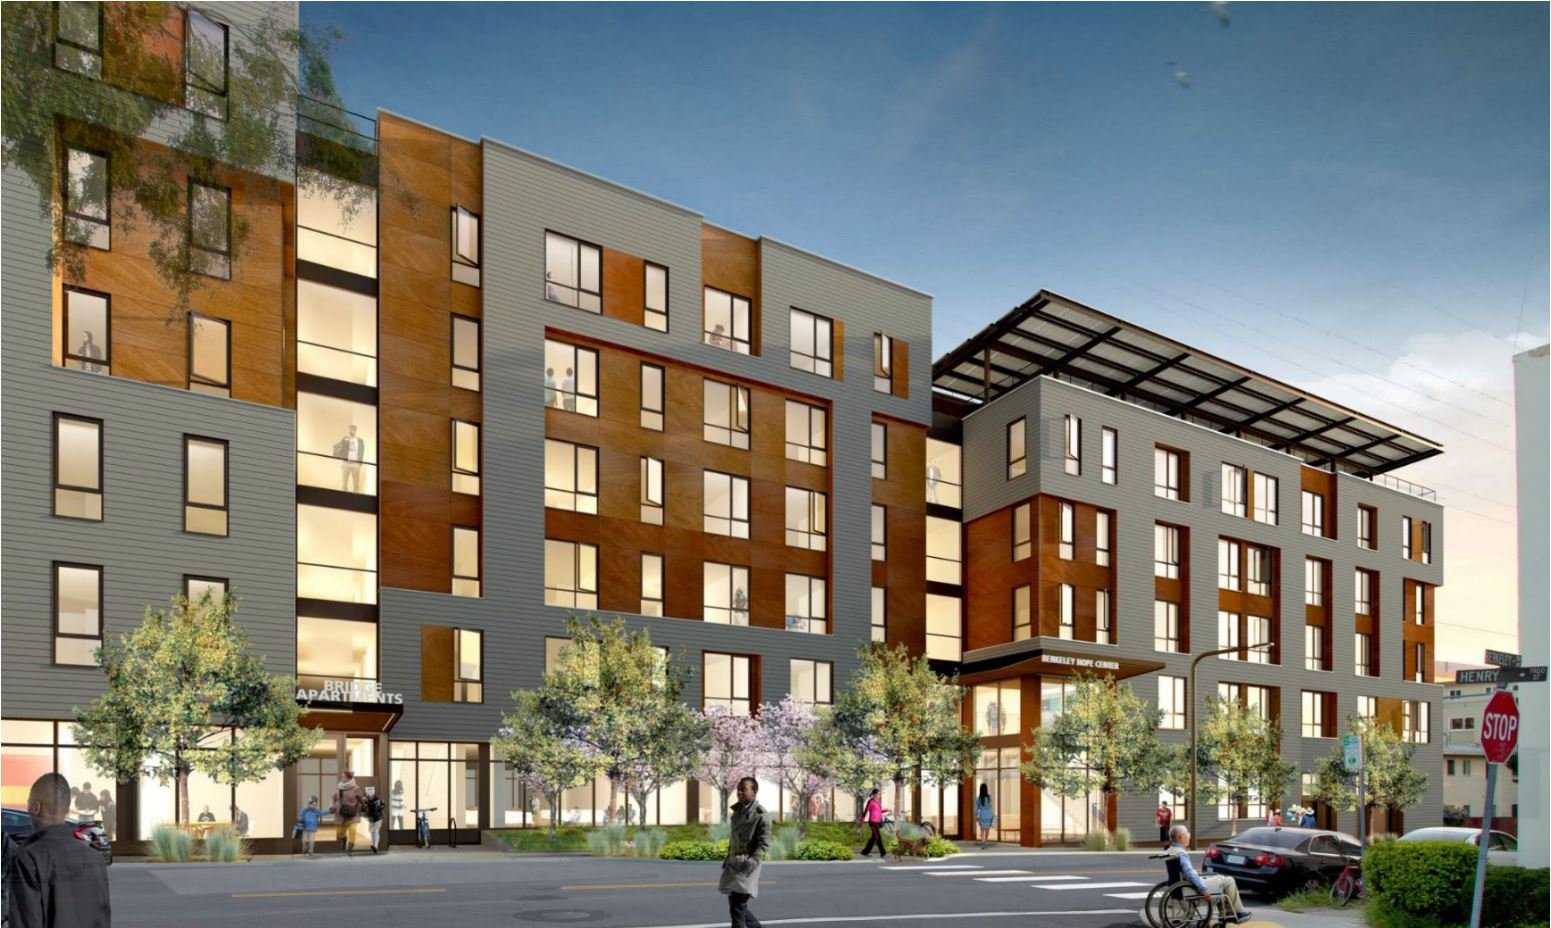 2012 Berkeley Way , Downtown Berkeley 142 units at 50%-60% AMI  44 beds (32 for transitional homeless and 12 for veterans) Client: BRIDGE Housing and Berkeley Food and Housing Project  San Francisco Business Times - SB 35 Project Approved